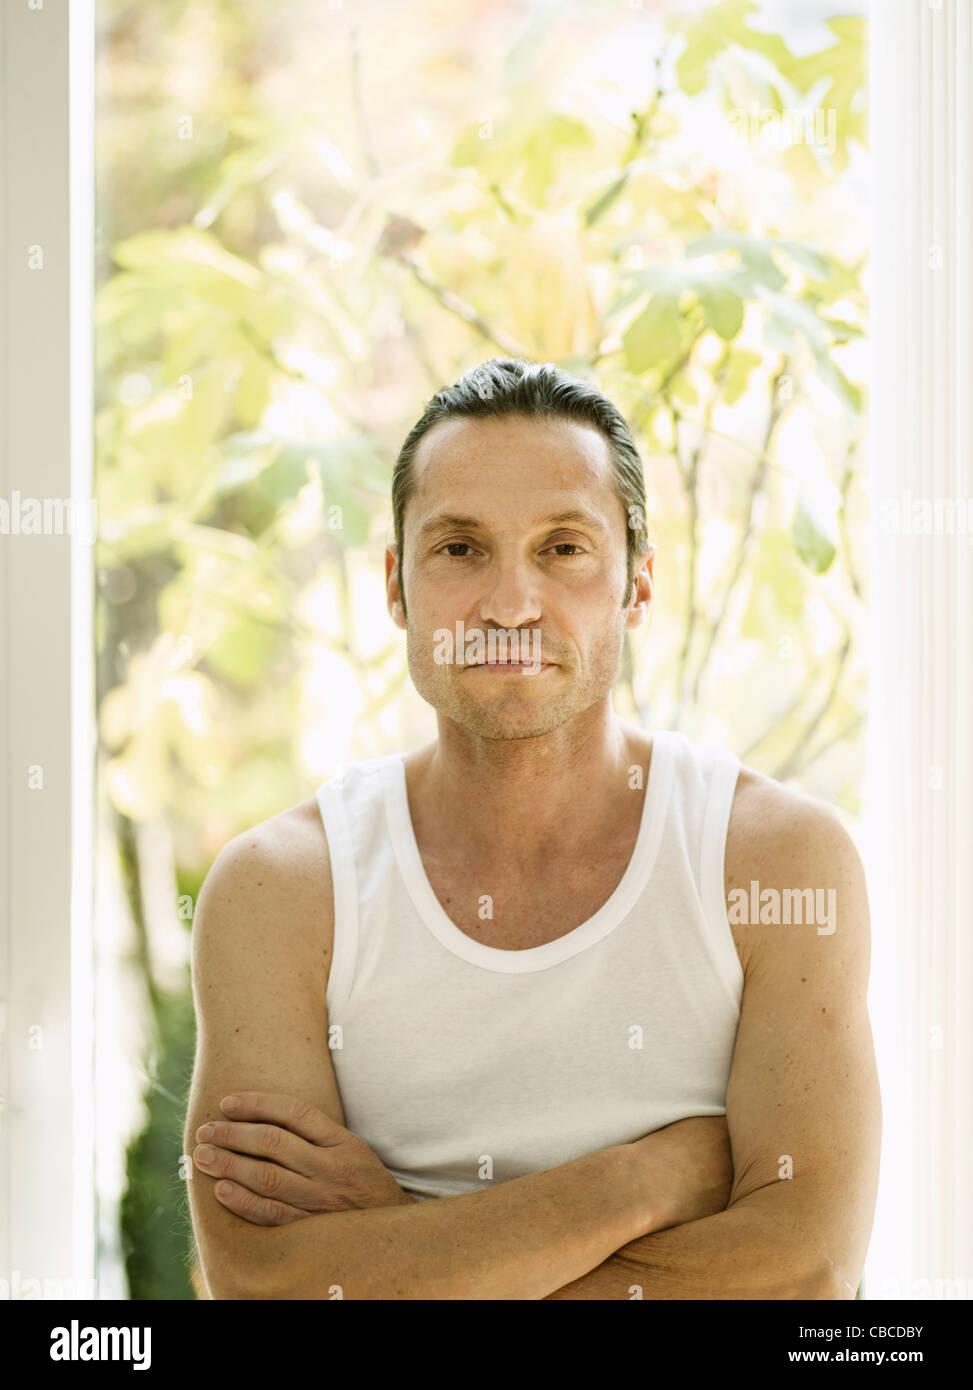 Man standing with arms crossed - Stock Image